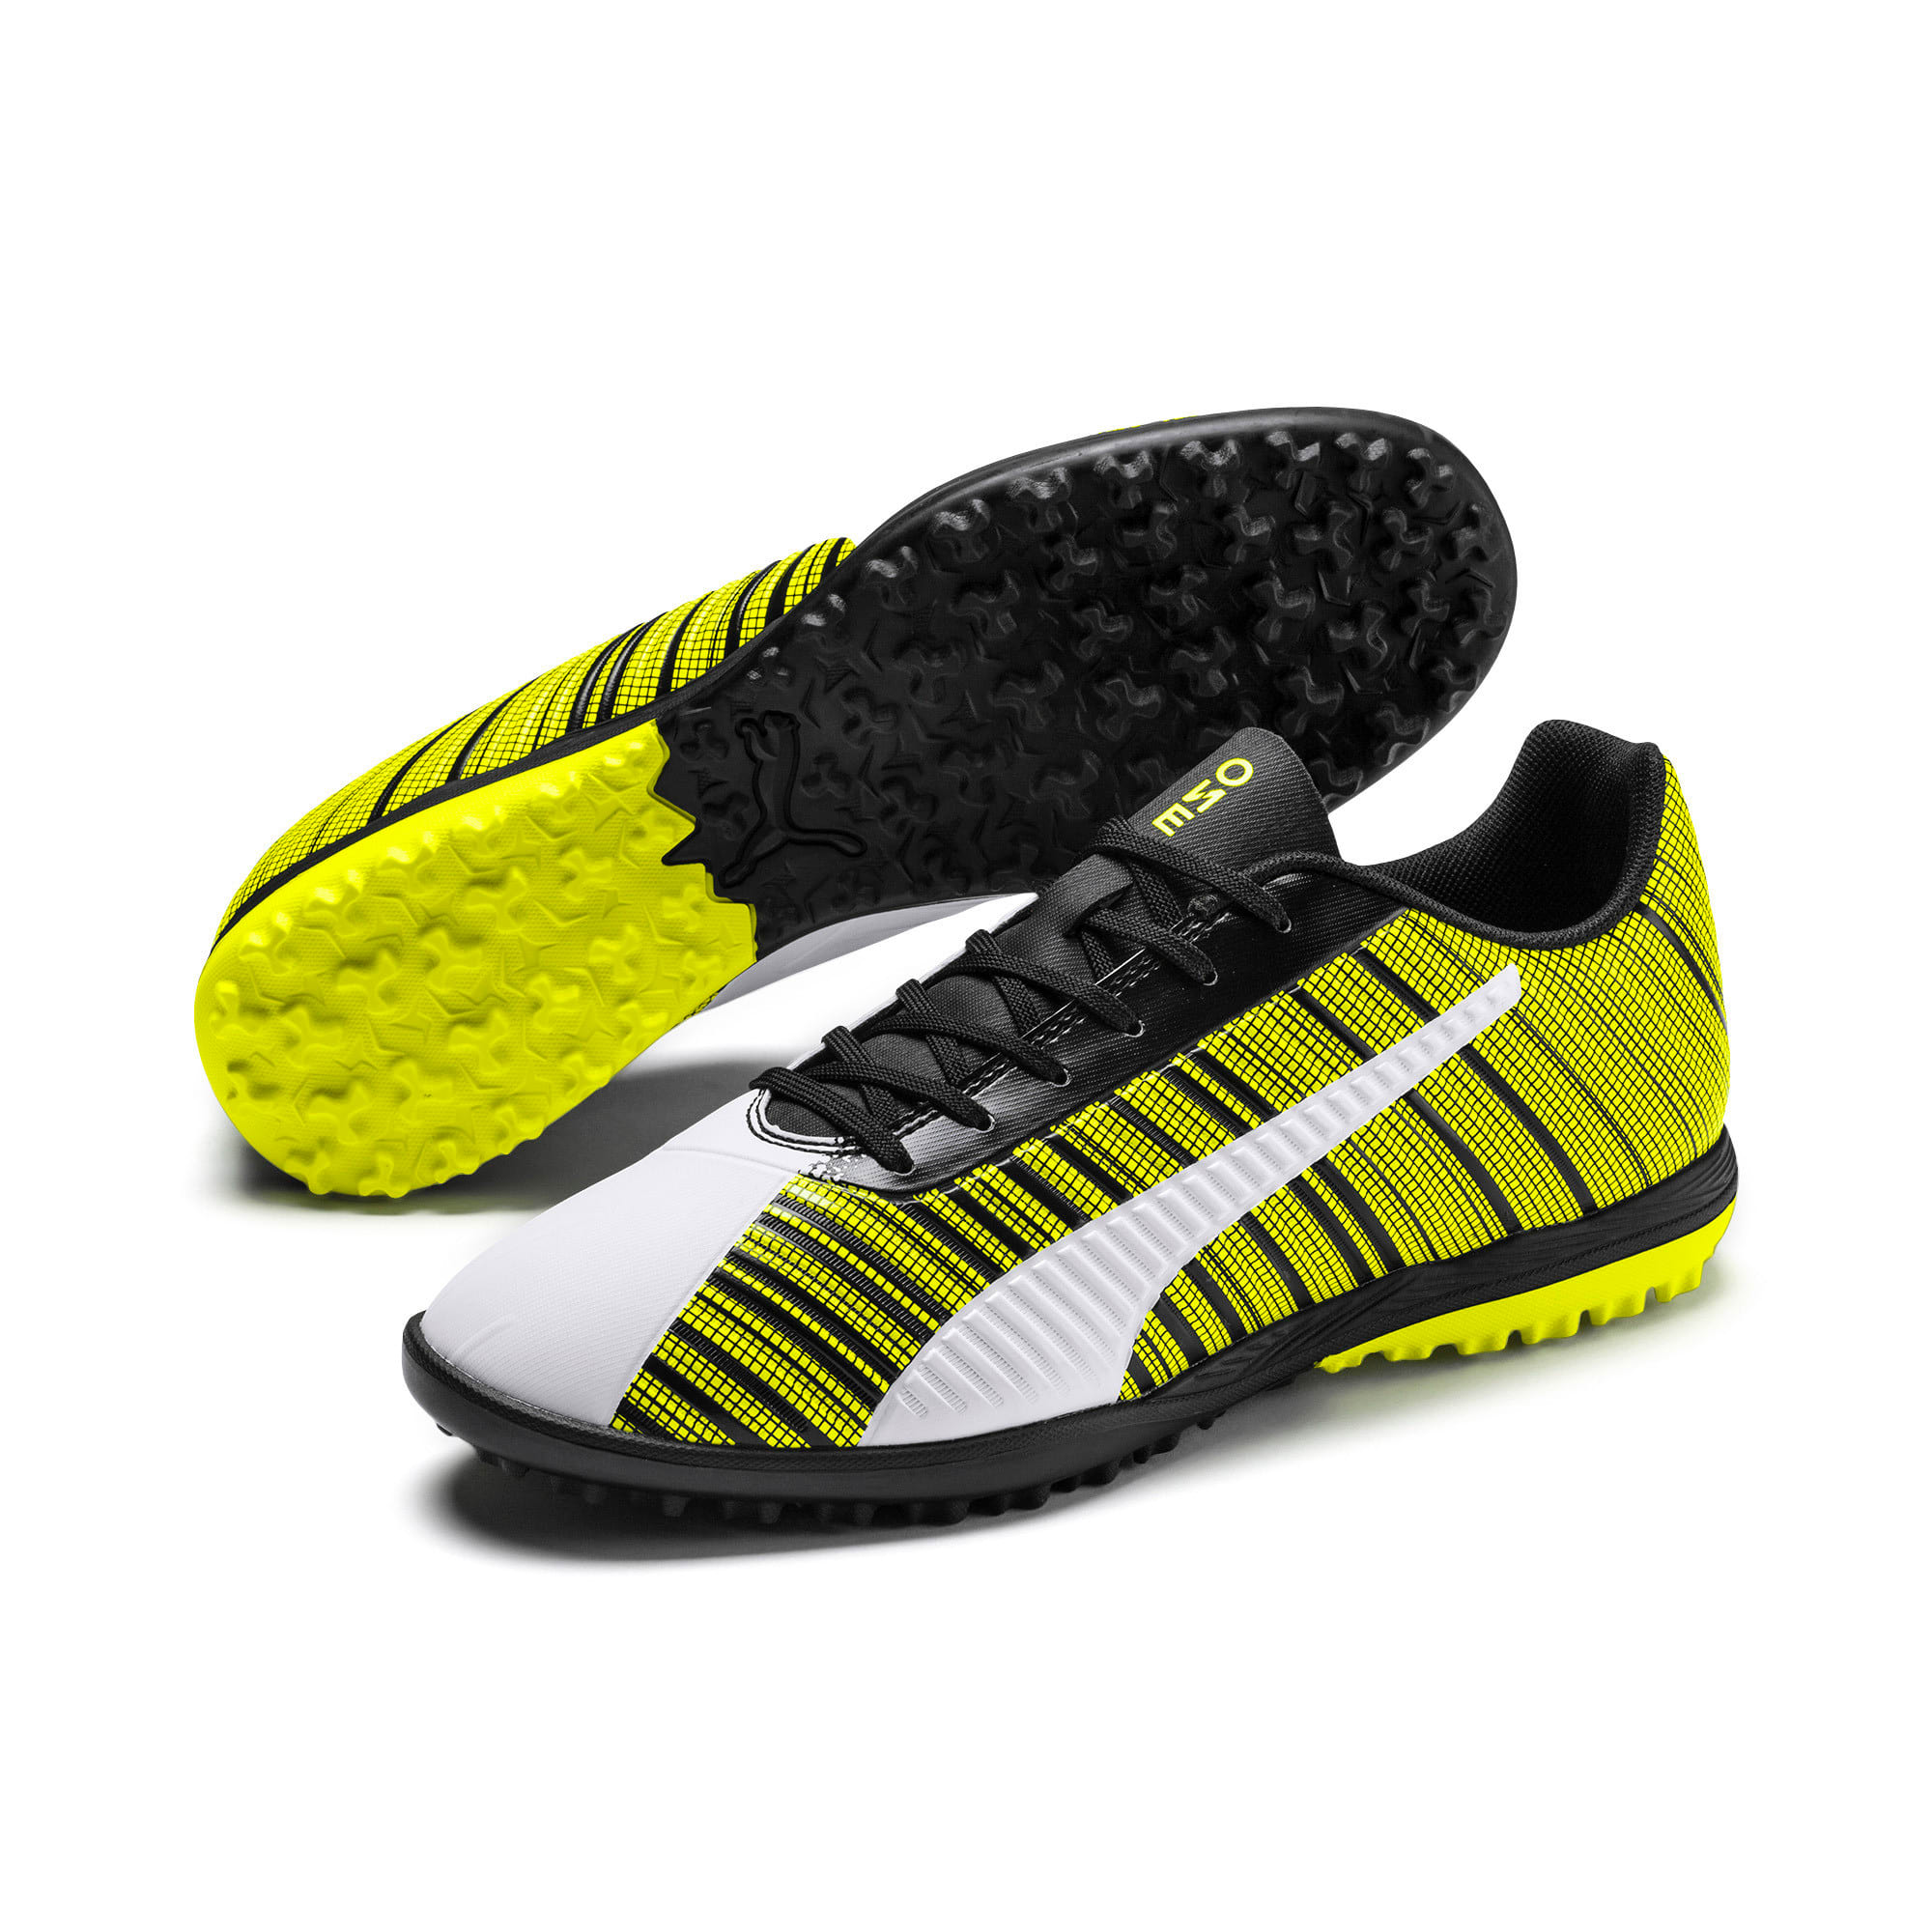 Thumbnail 3 of PUMA ONE 5.4 TT Men's Football Boots, White- Black-Yellow Alert, medium